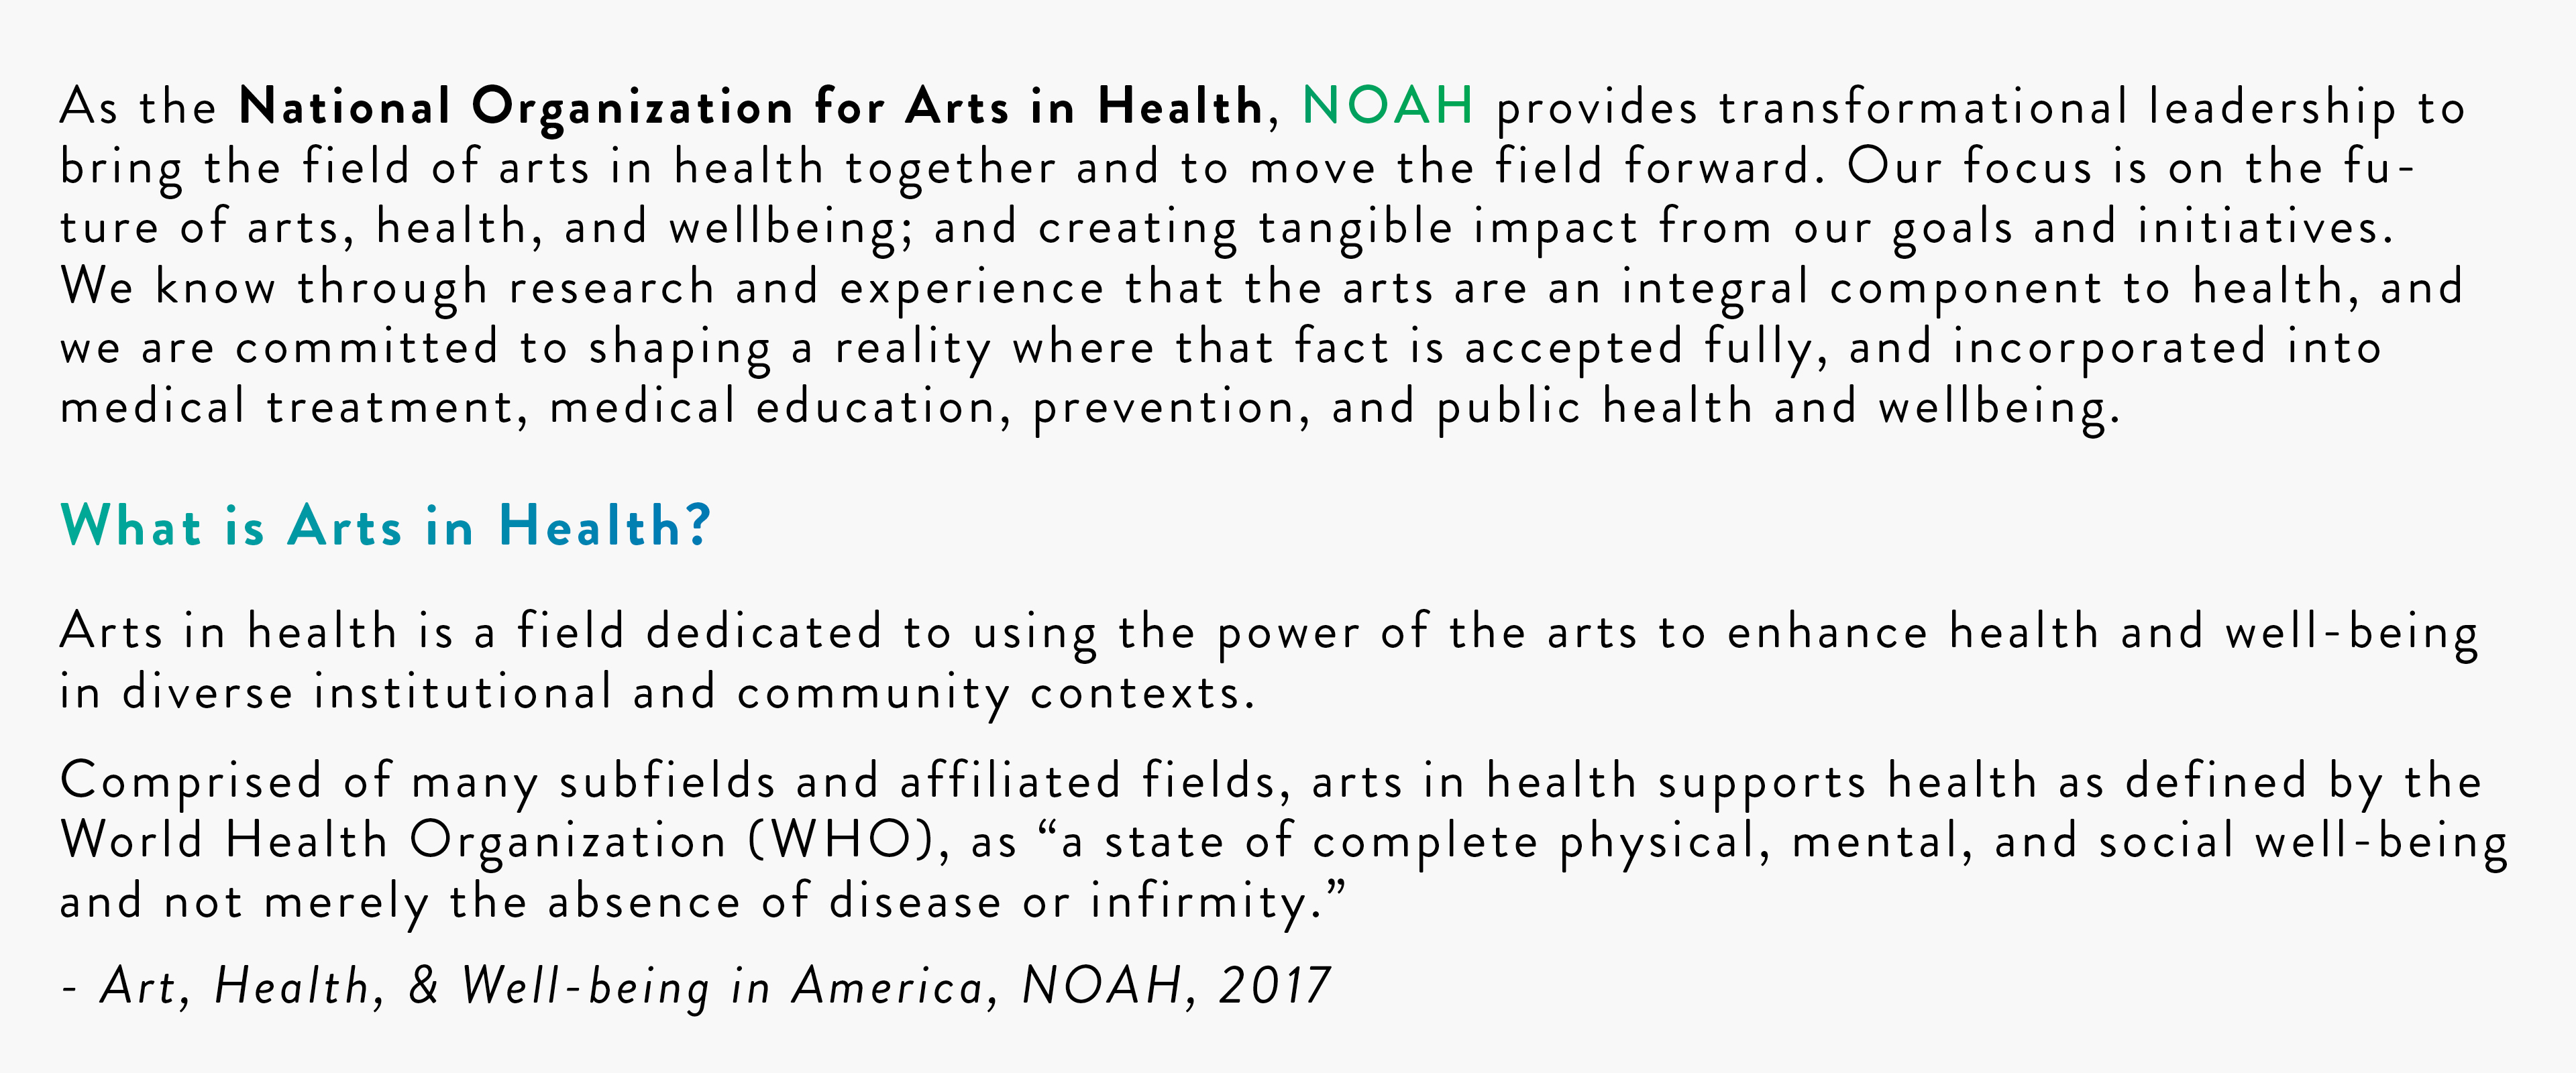 """As the National Organization for Arts in Health, NOAH provides transformational leadership to bring the field of arts in health together and to move the field forward. Our focus is on the future of arts, health, and wellbeing; and creating tangible impact from our goals and initiatives. We know through research and experience that the arts are an integral component to health, and we are committed to shaping a reality where that fact is accepted fully, and incorporated into medical treatment, medical education, prevention, and public health and wellbeing. What is Arts in Health? Arts in health is a field dedicated to using the power of the arts to enhance health and well-being in diverse institutional and community contexts. Comprised of many subfields and affiliated fields, arts in health supports health as defined by the World Health Organization (WHO), as """"a state of complete physical, mental, and social well-being and not merely the absence of disease or infirmity."""" - Art, Health, & Well-being in America, NOAH, 2017"""